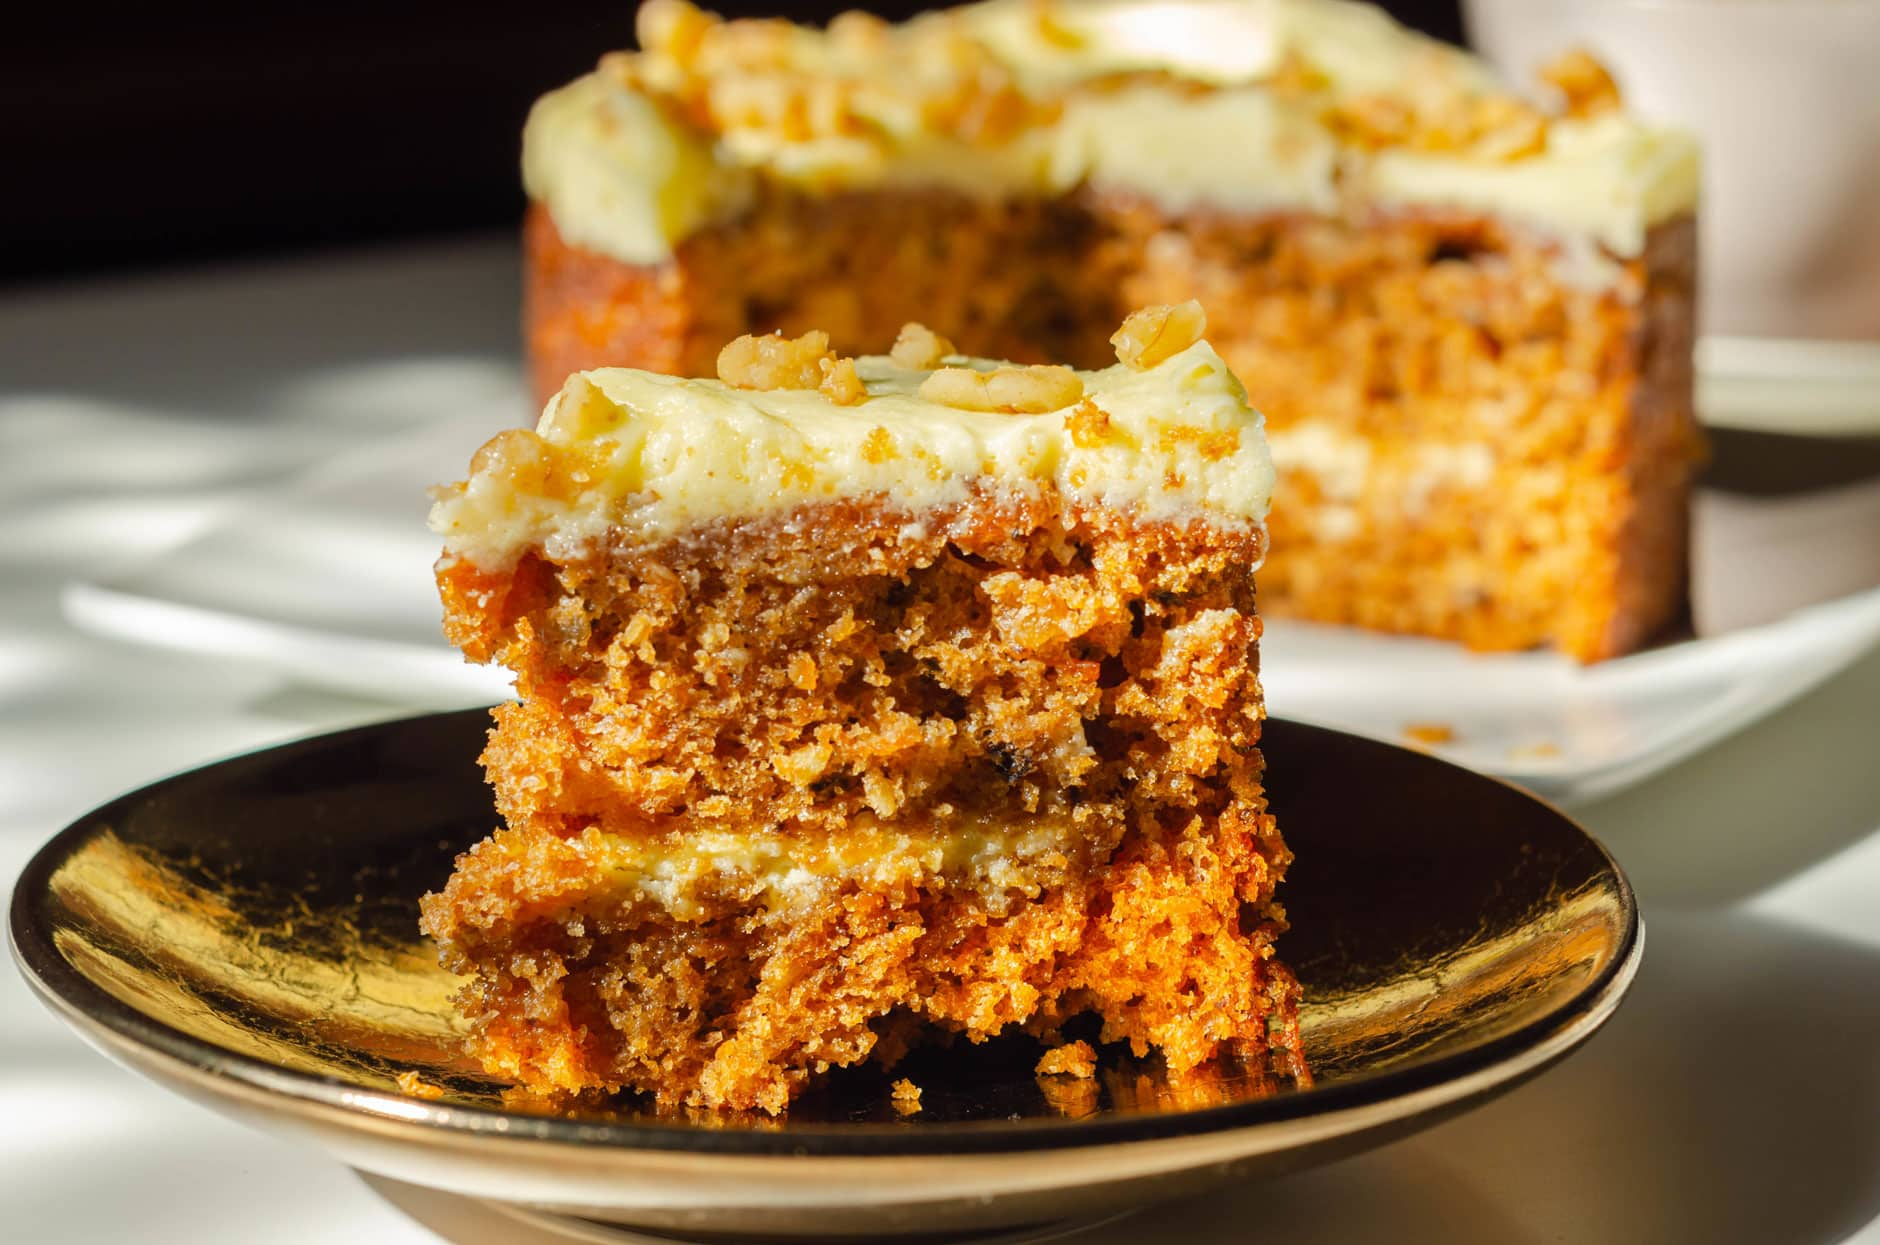 Best Carrot Cake Recipeimage preview